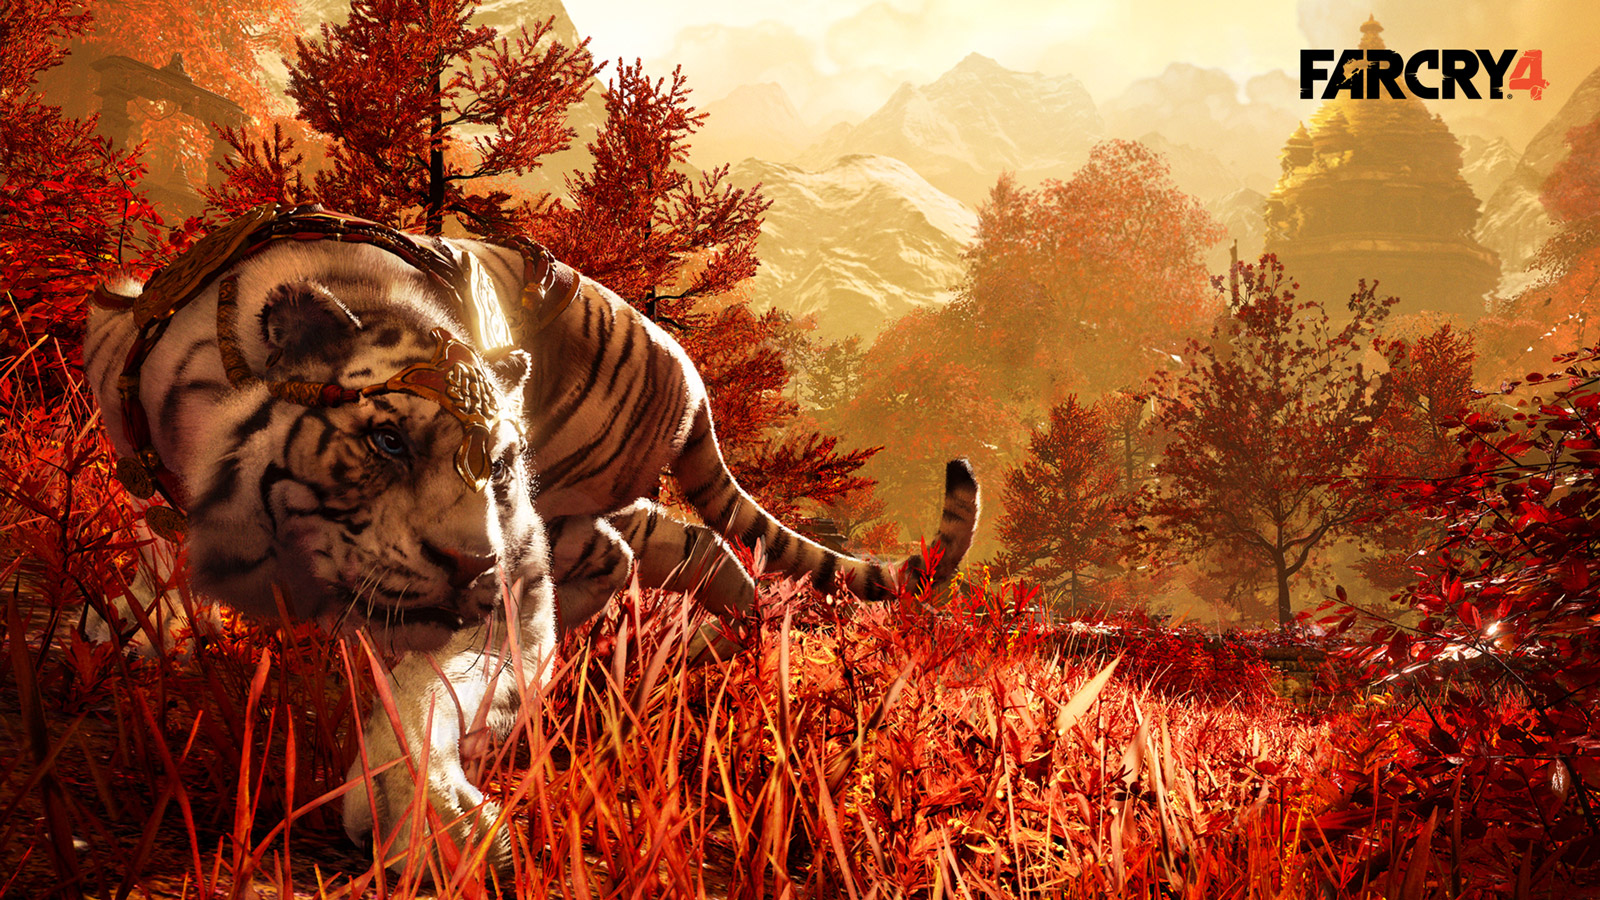 Fantastic Far Cry 4 Wallpaper 43194 1600x900px